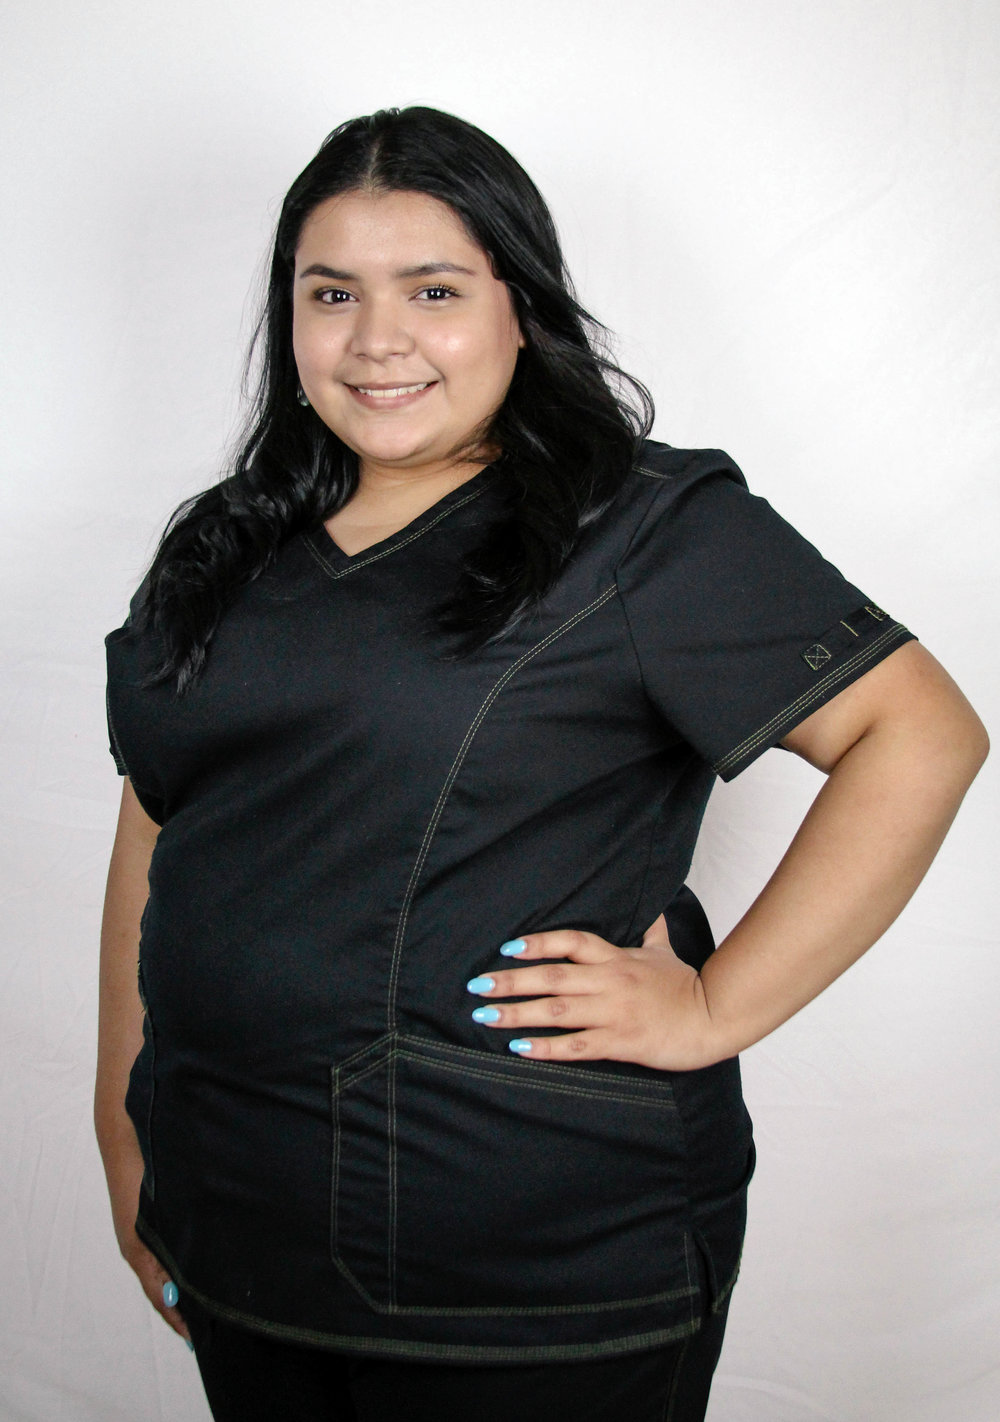 Betzaida - Registered Dental Assistant